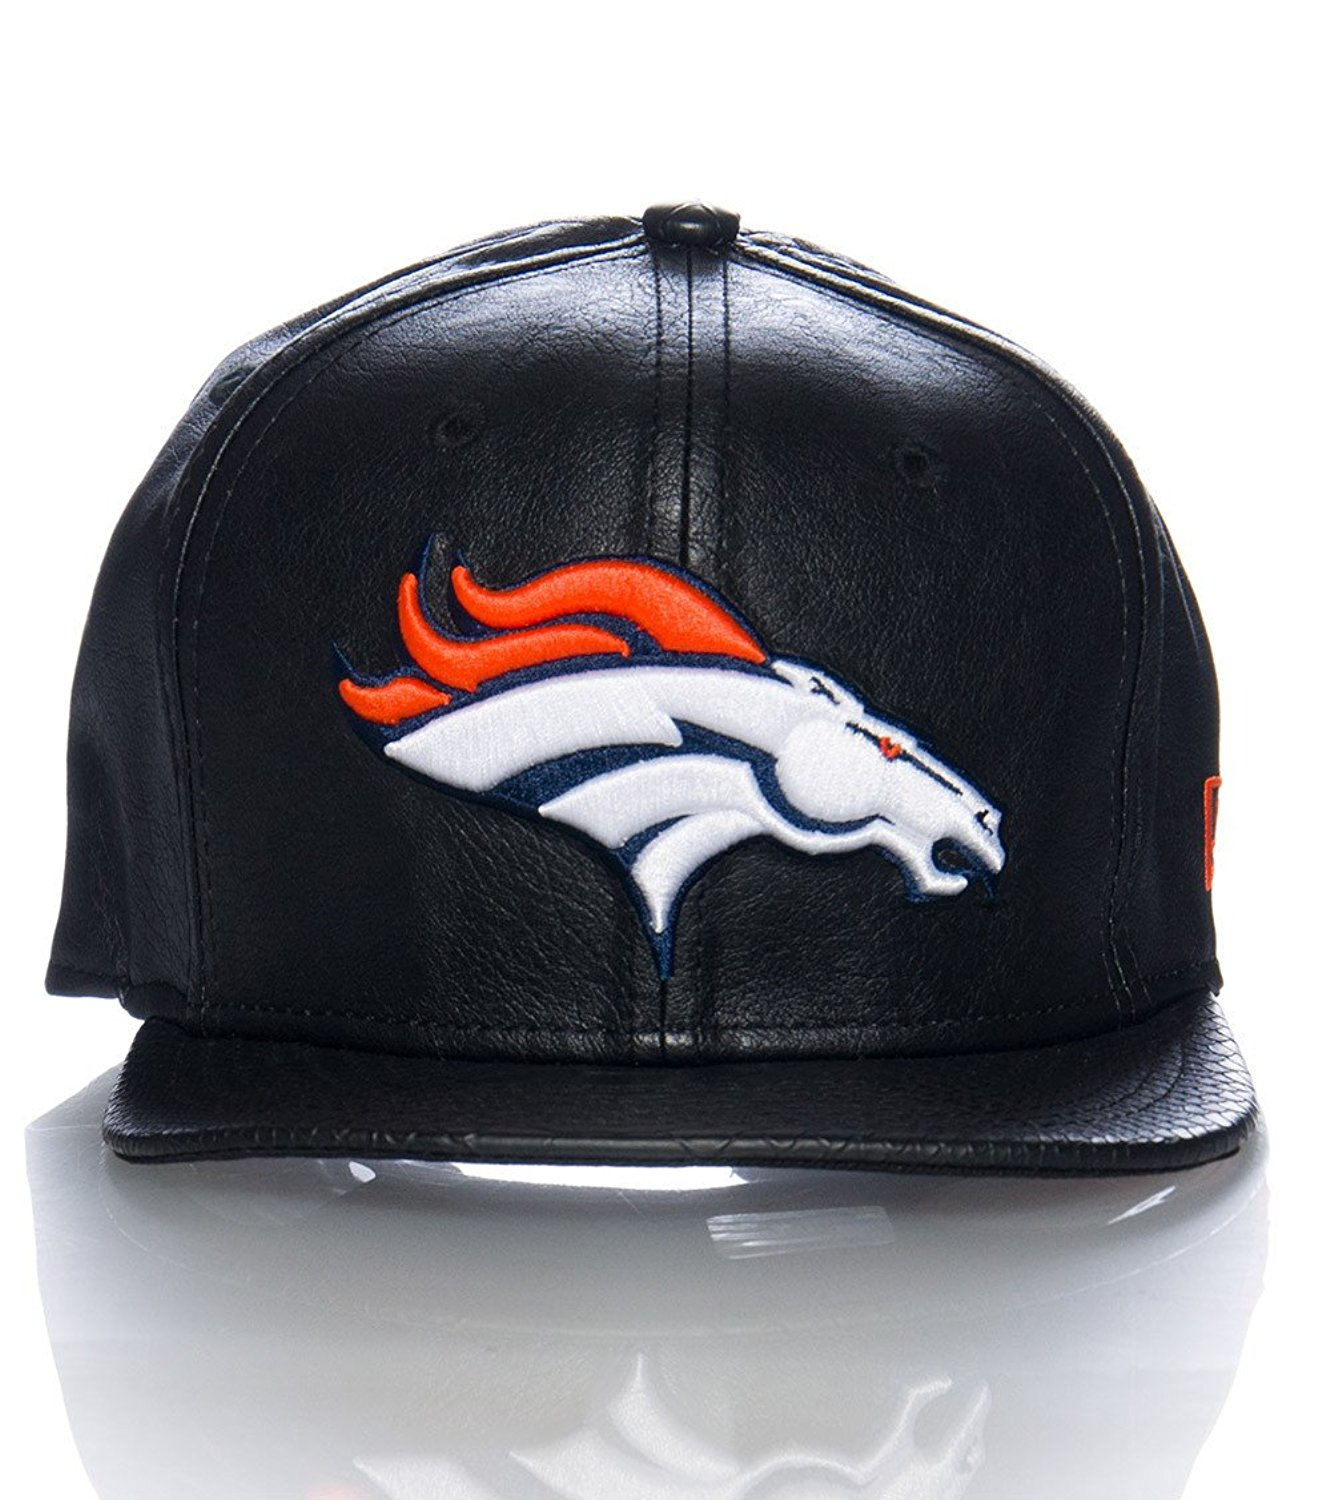 Get Quotations · New Era Og Fits Denver Broncos Black Leather Snakeskin  Buckle Strapback Snap Hat Cap 28a102e03